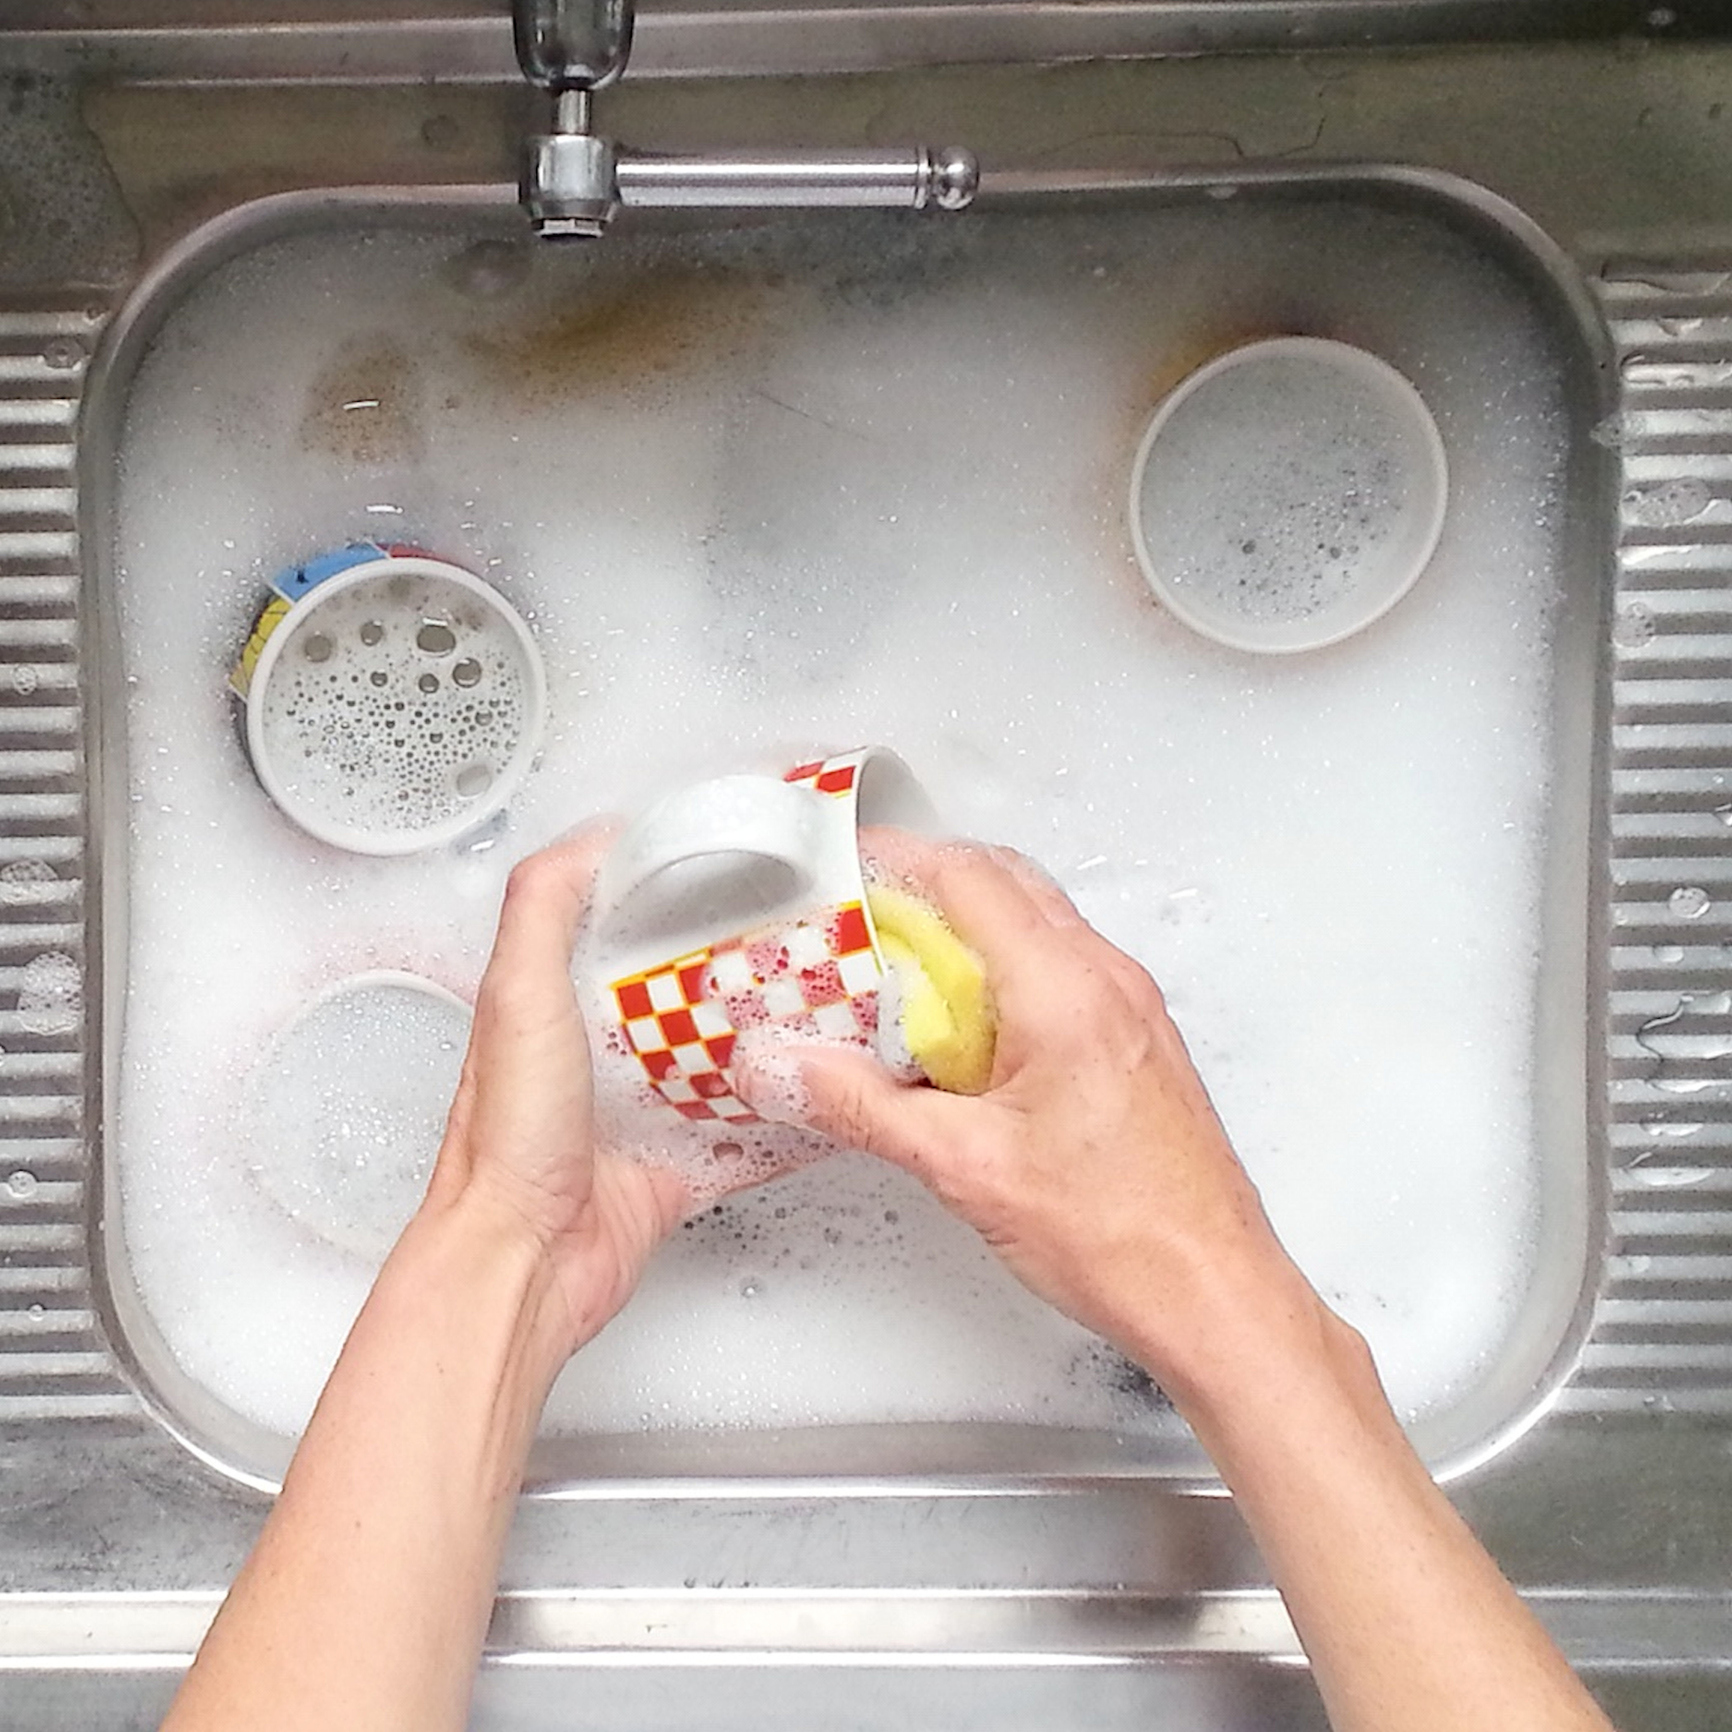 Cropped Image Of Hands Washing Cups In Sink